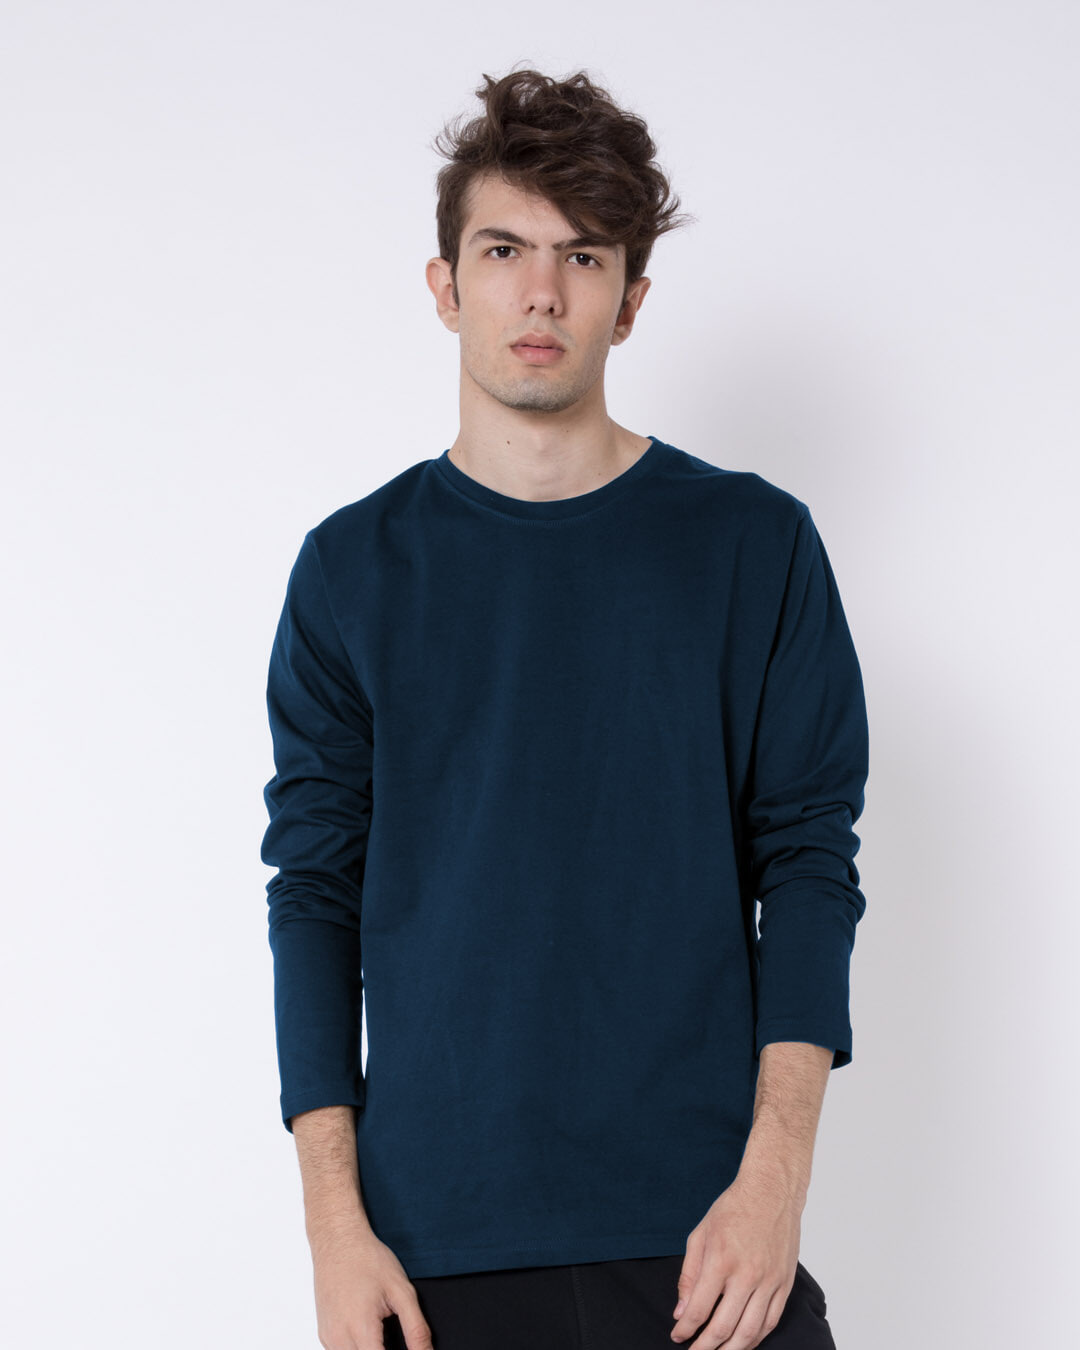 Navy Blue Plain Long Full Sleeve T-Shirts for Men Online at Bewakoof.com 0fda9573158